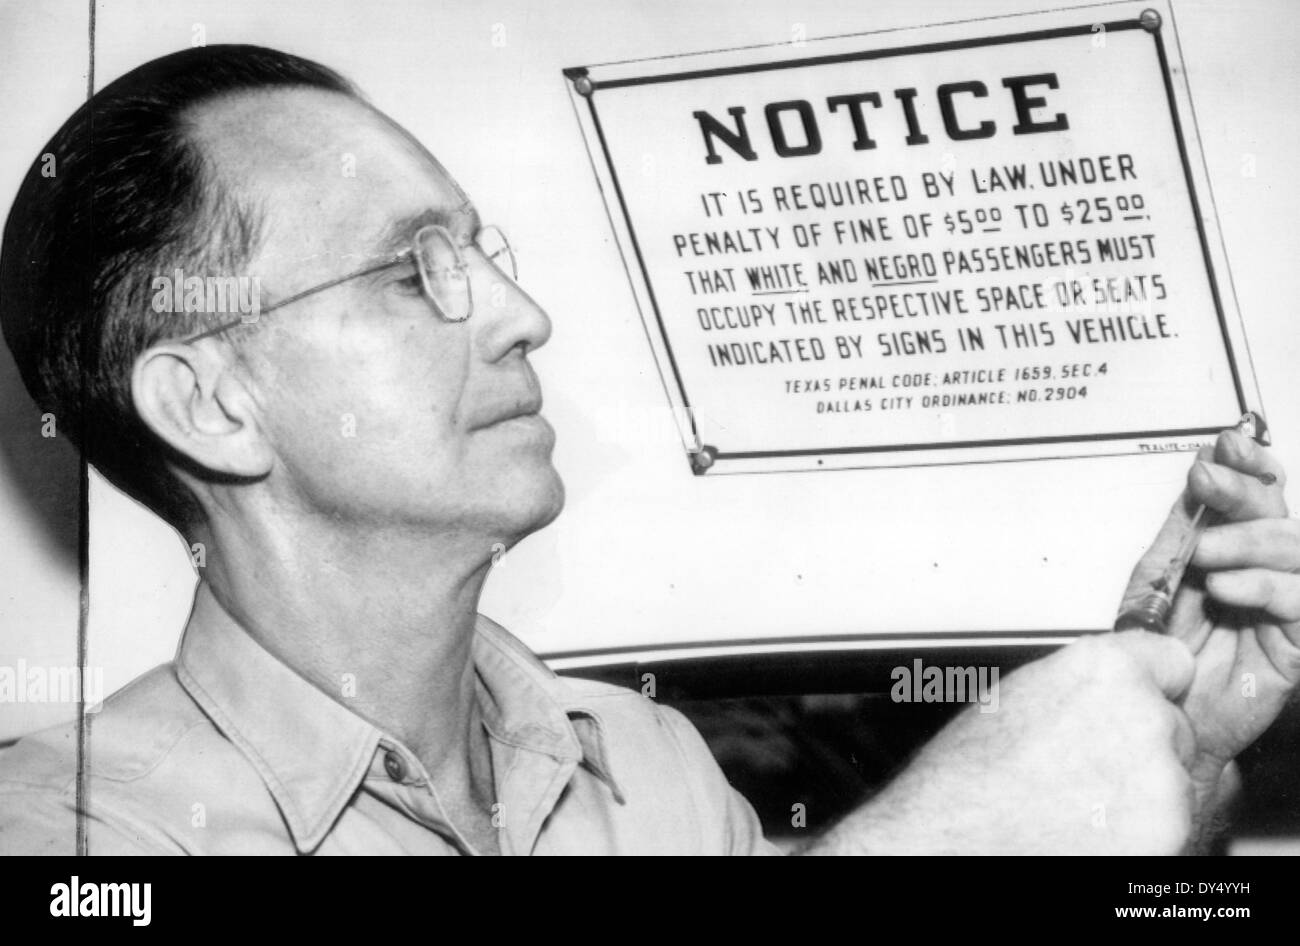 DALLAS CITY CODE SEGREGATION NOTICE 1941 - see Description below - Stock Image